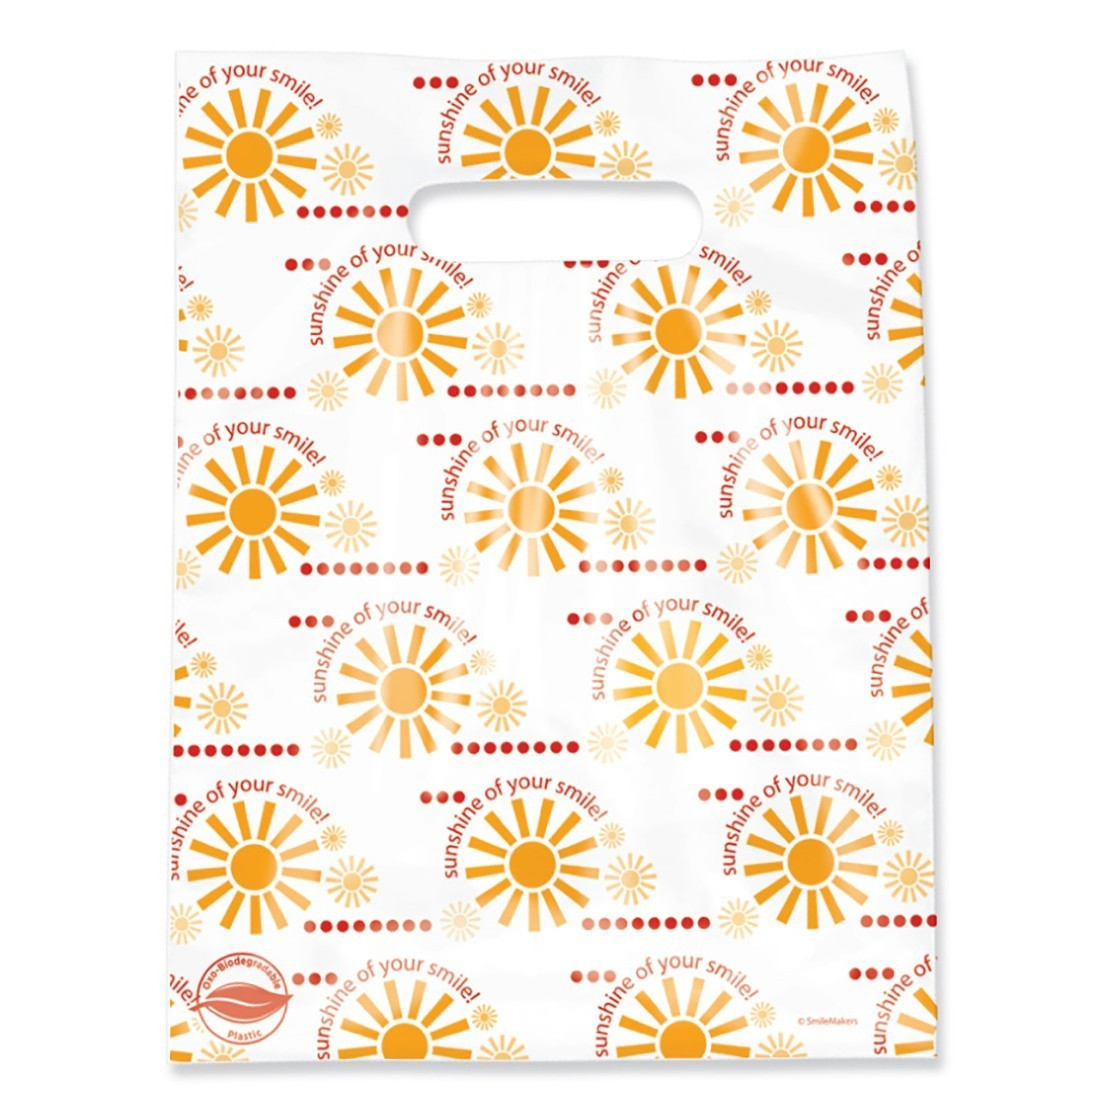 Scatter Oxobiodegradable Sunshine Smile Bags [image]